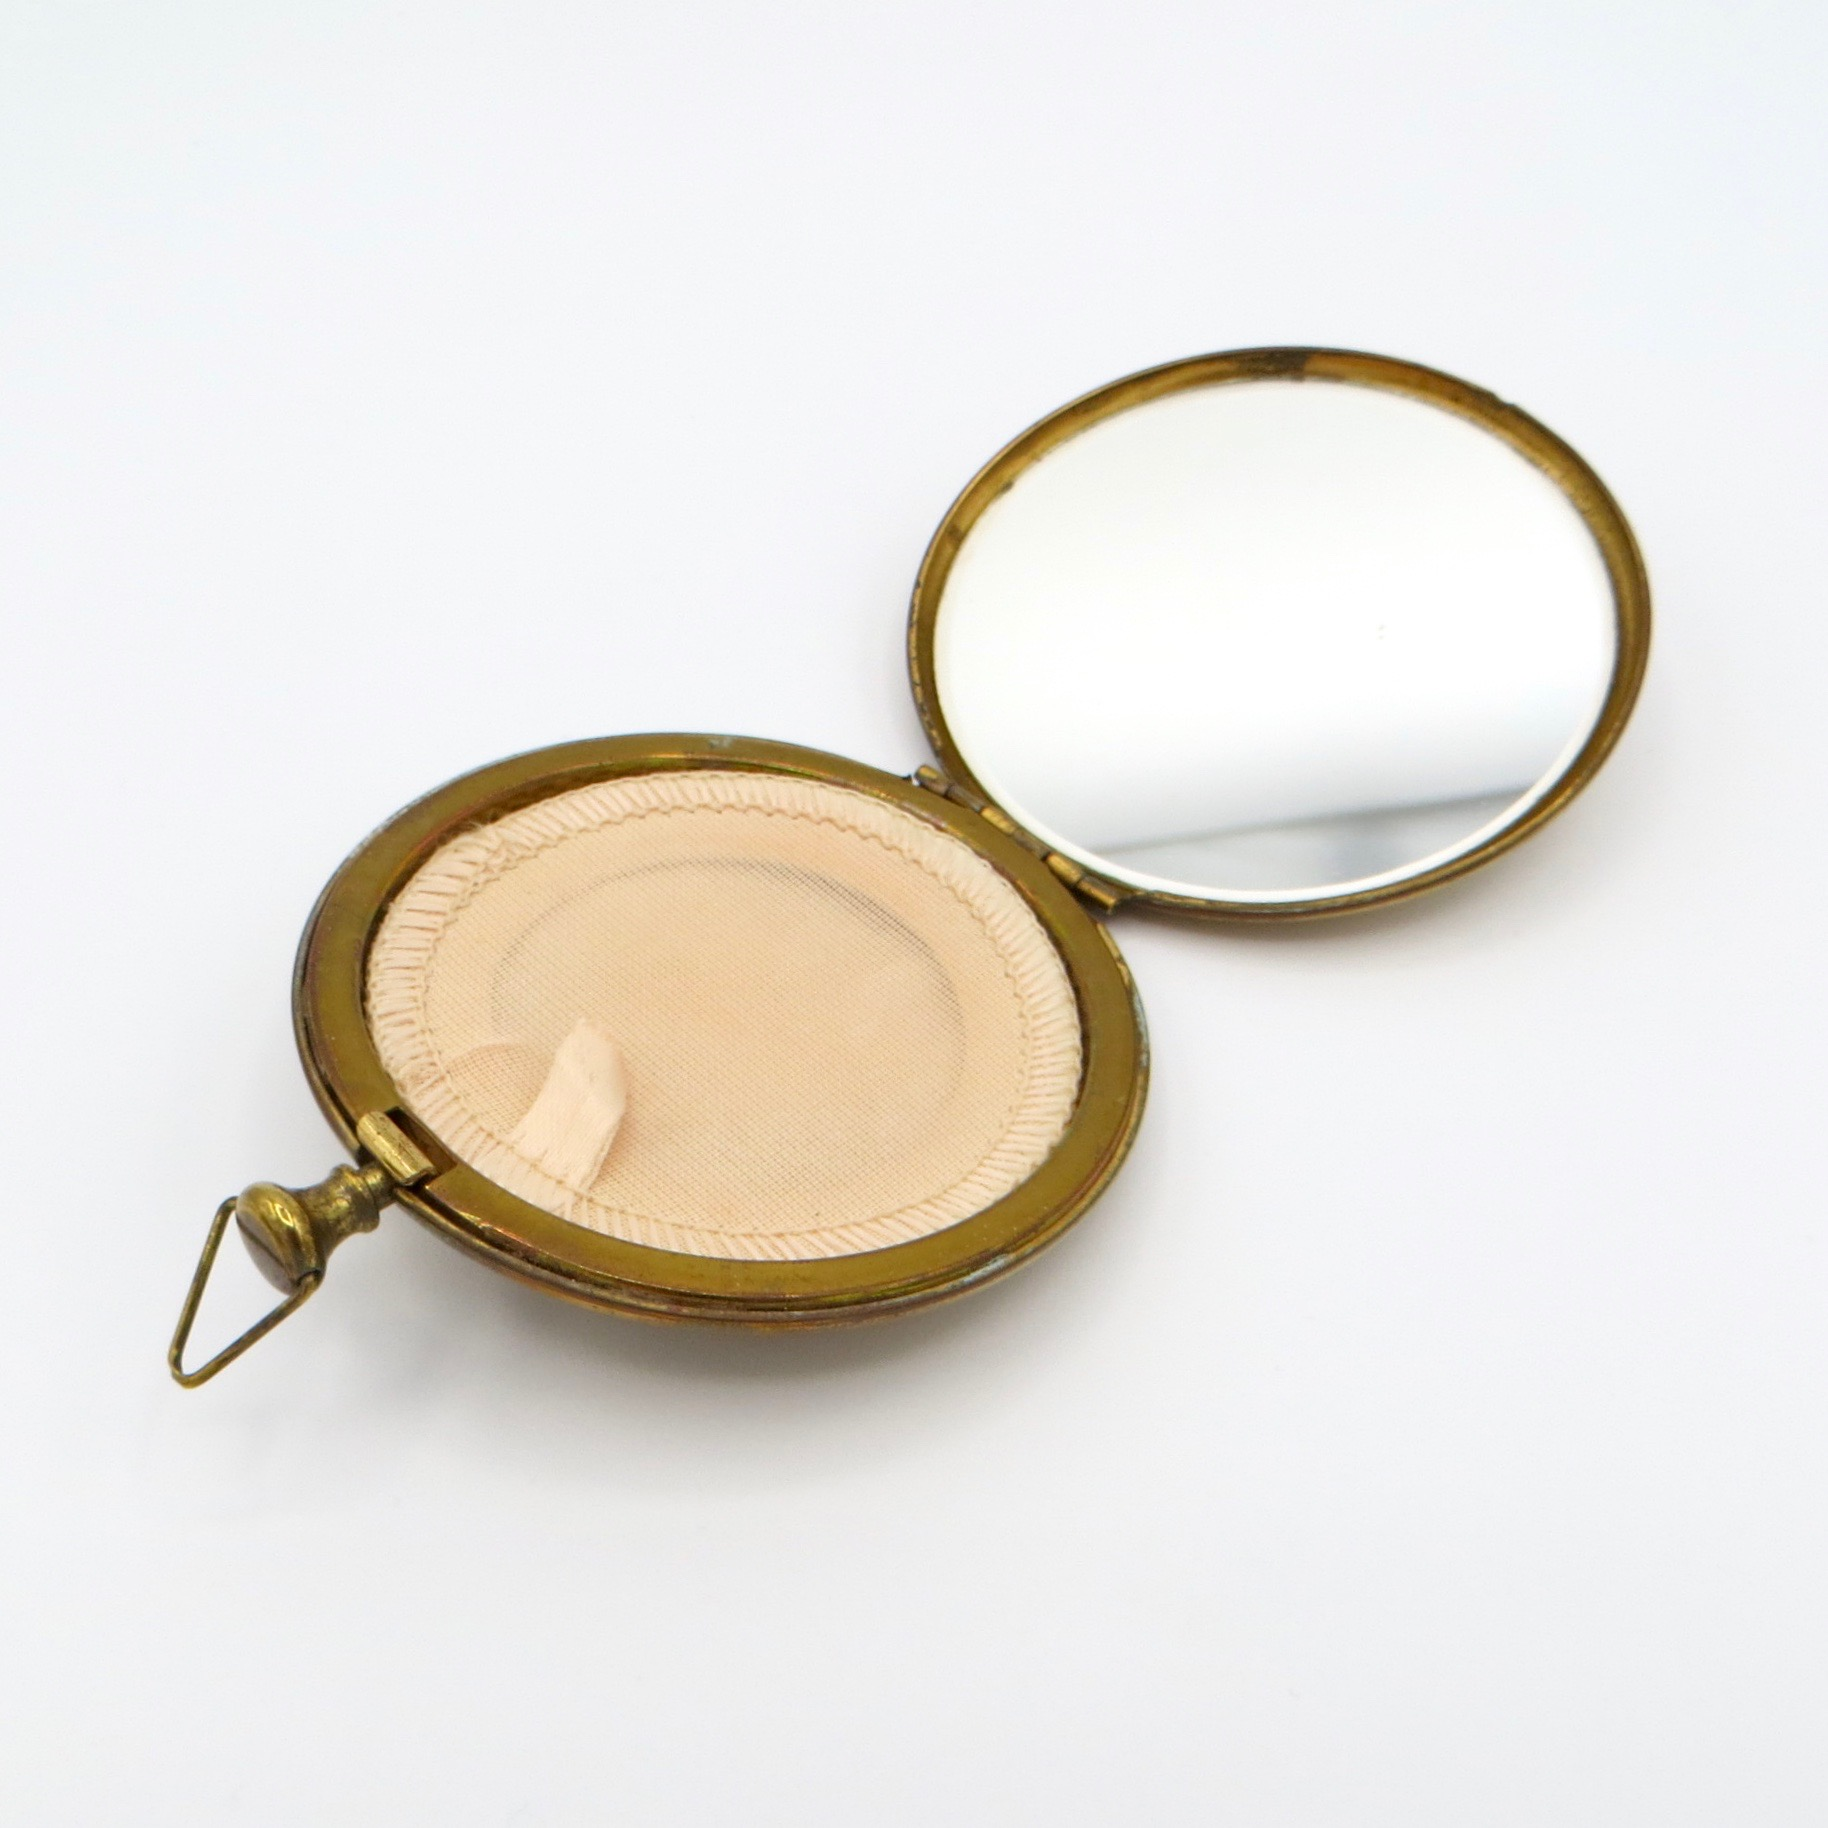 Heart & Feather Compact